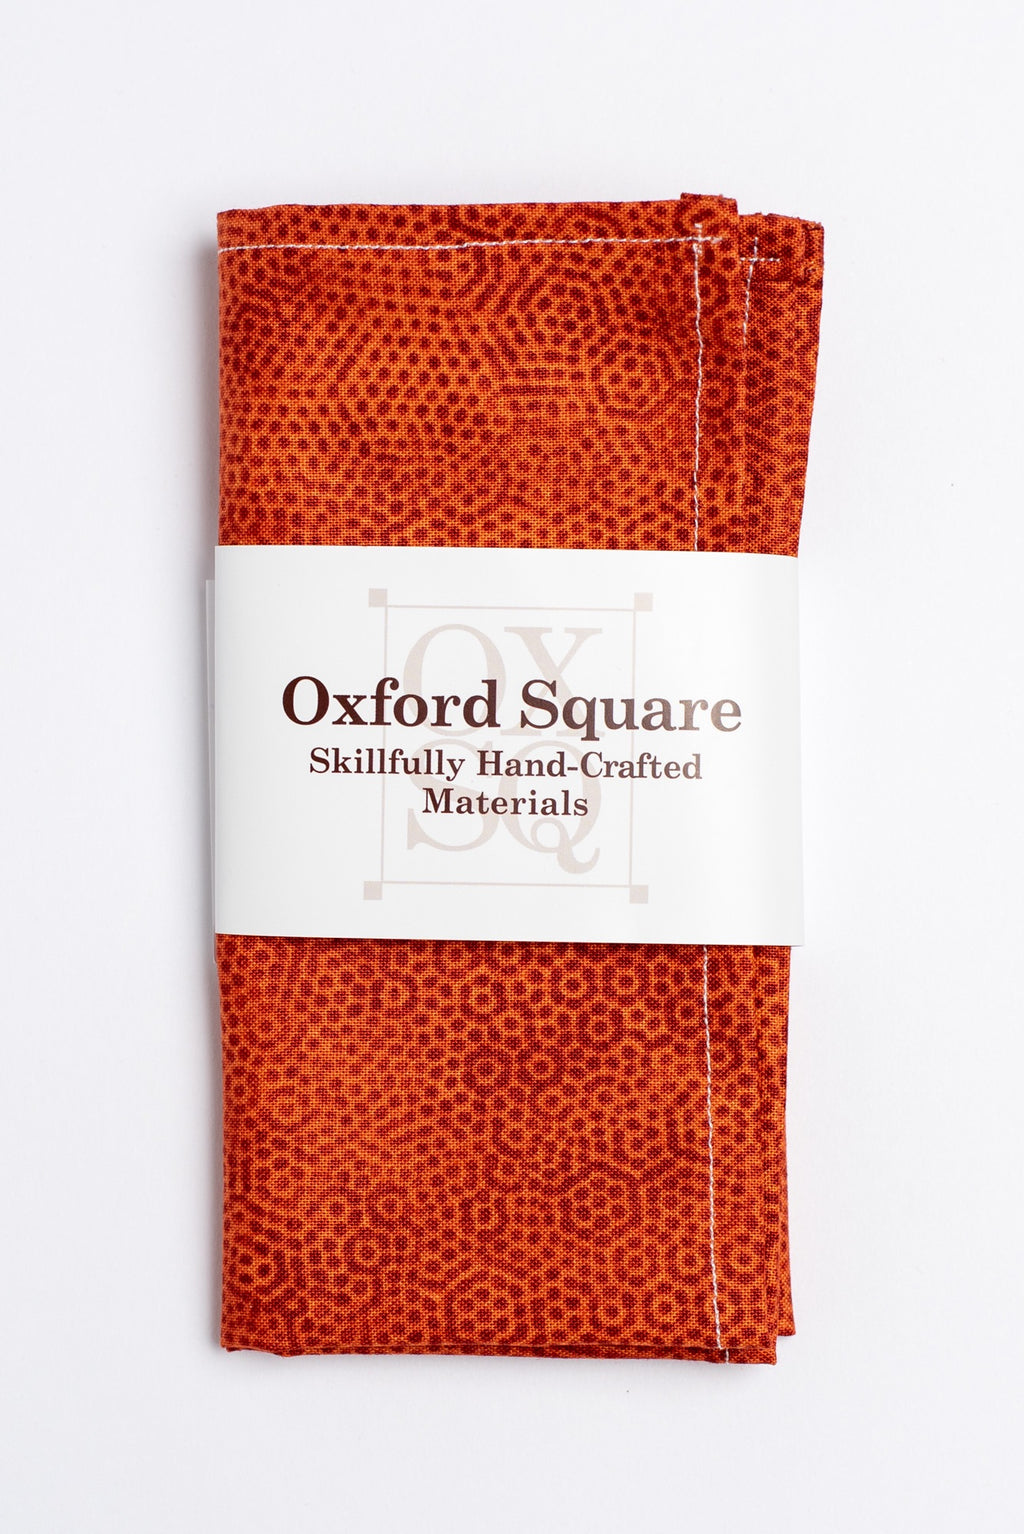 Orange polka dot pattern pocket square -Oxford Square